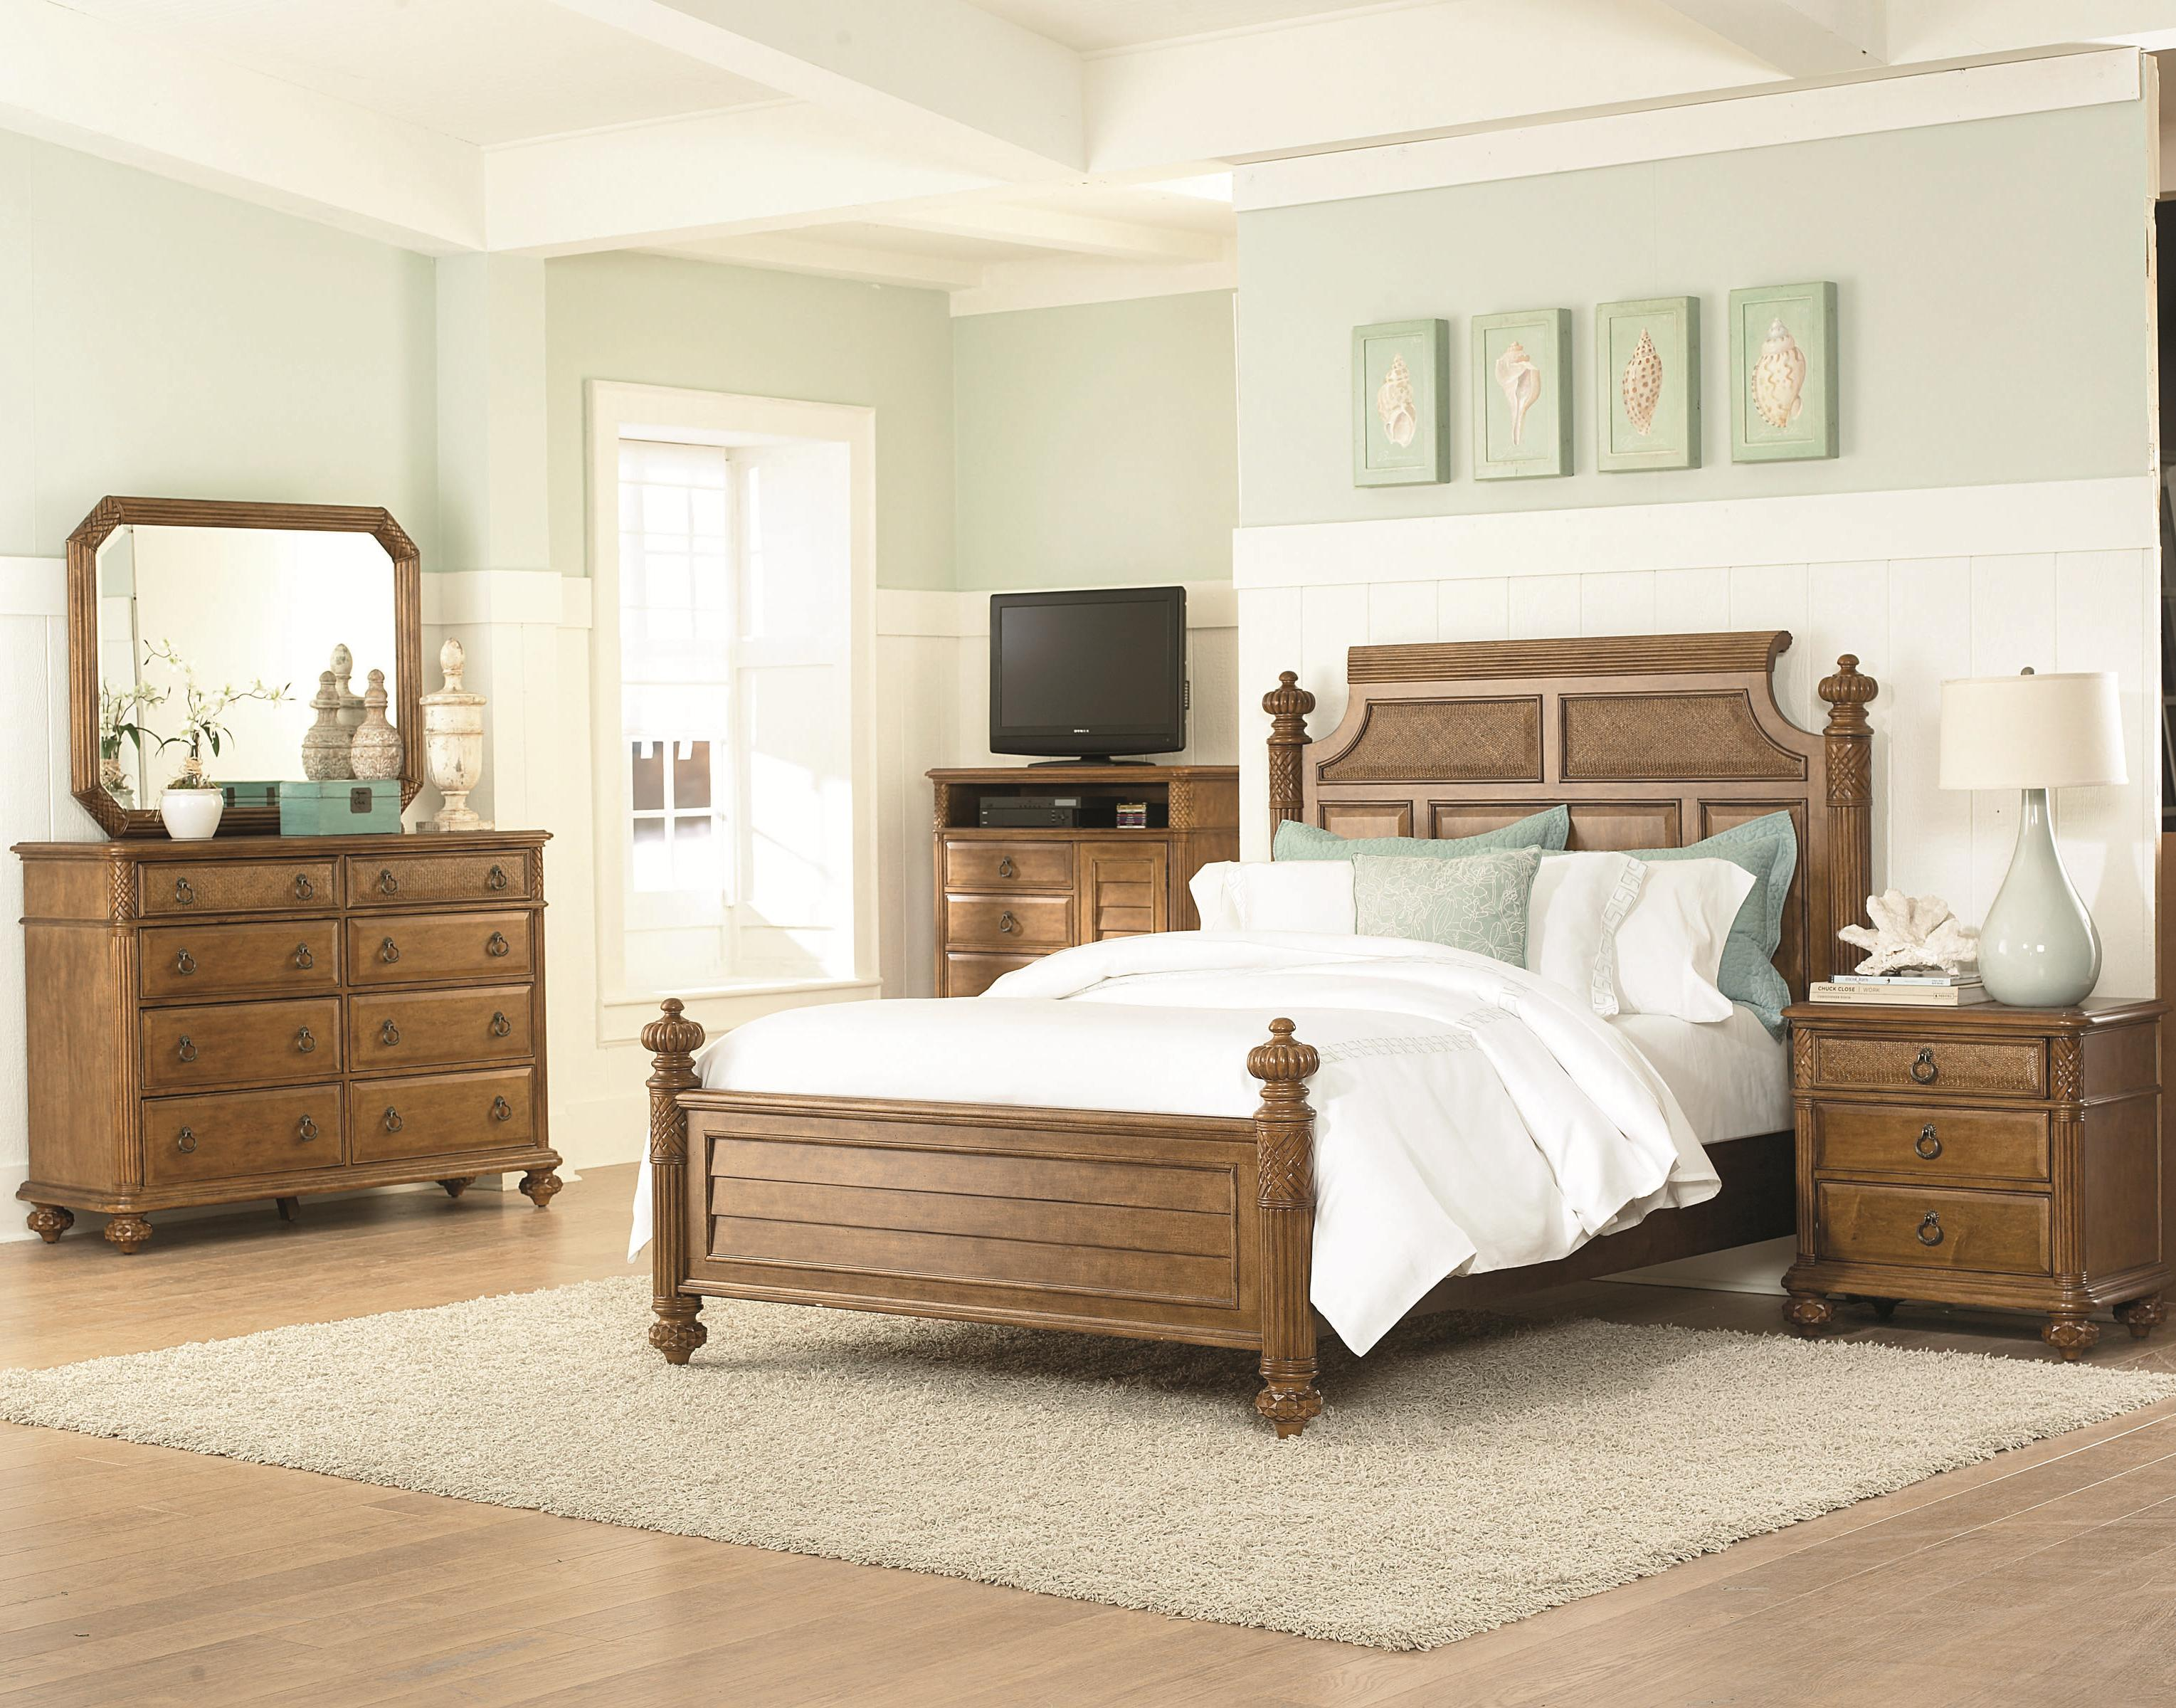 American Drew Grand Isle King Bedroom Group - Item Number: 079 K Bedroom Group 2